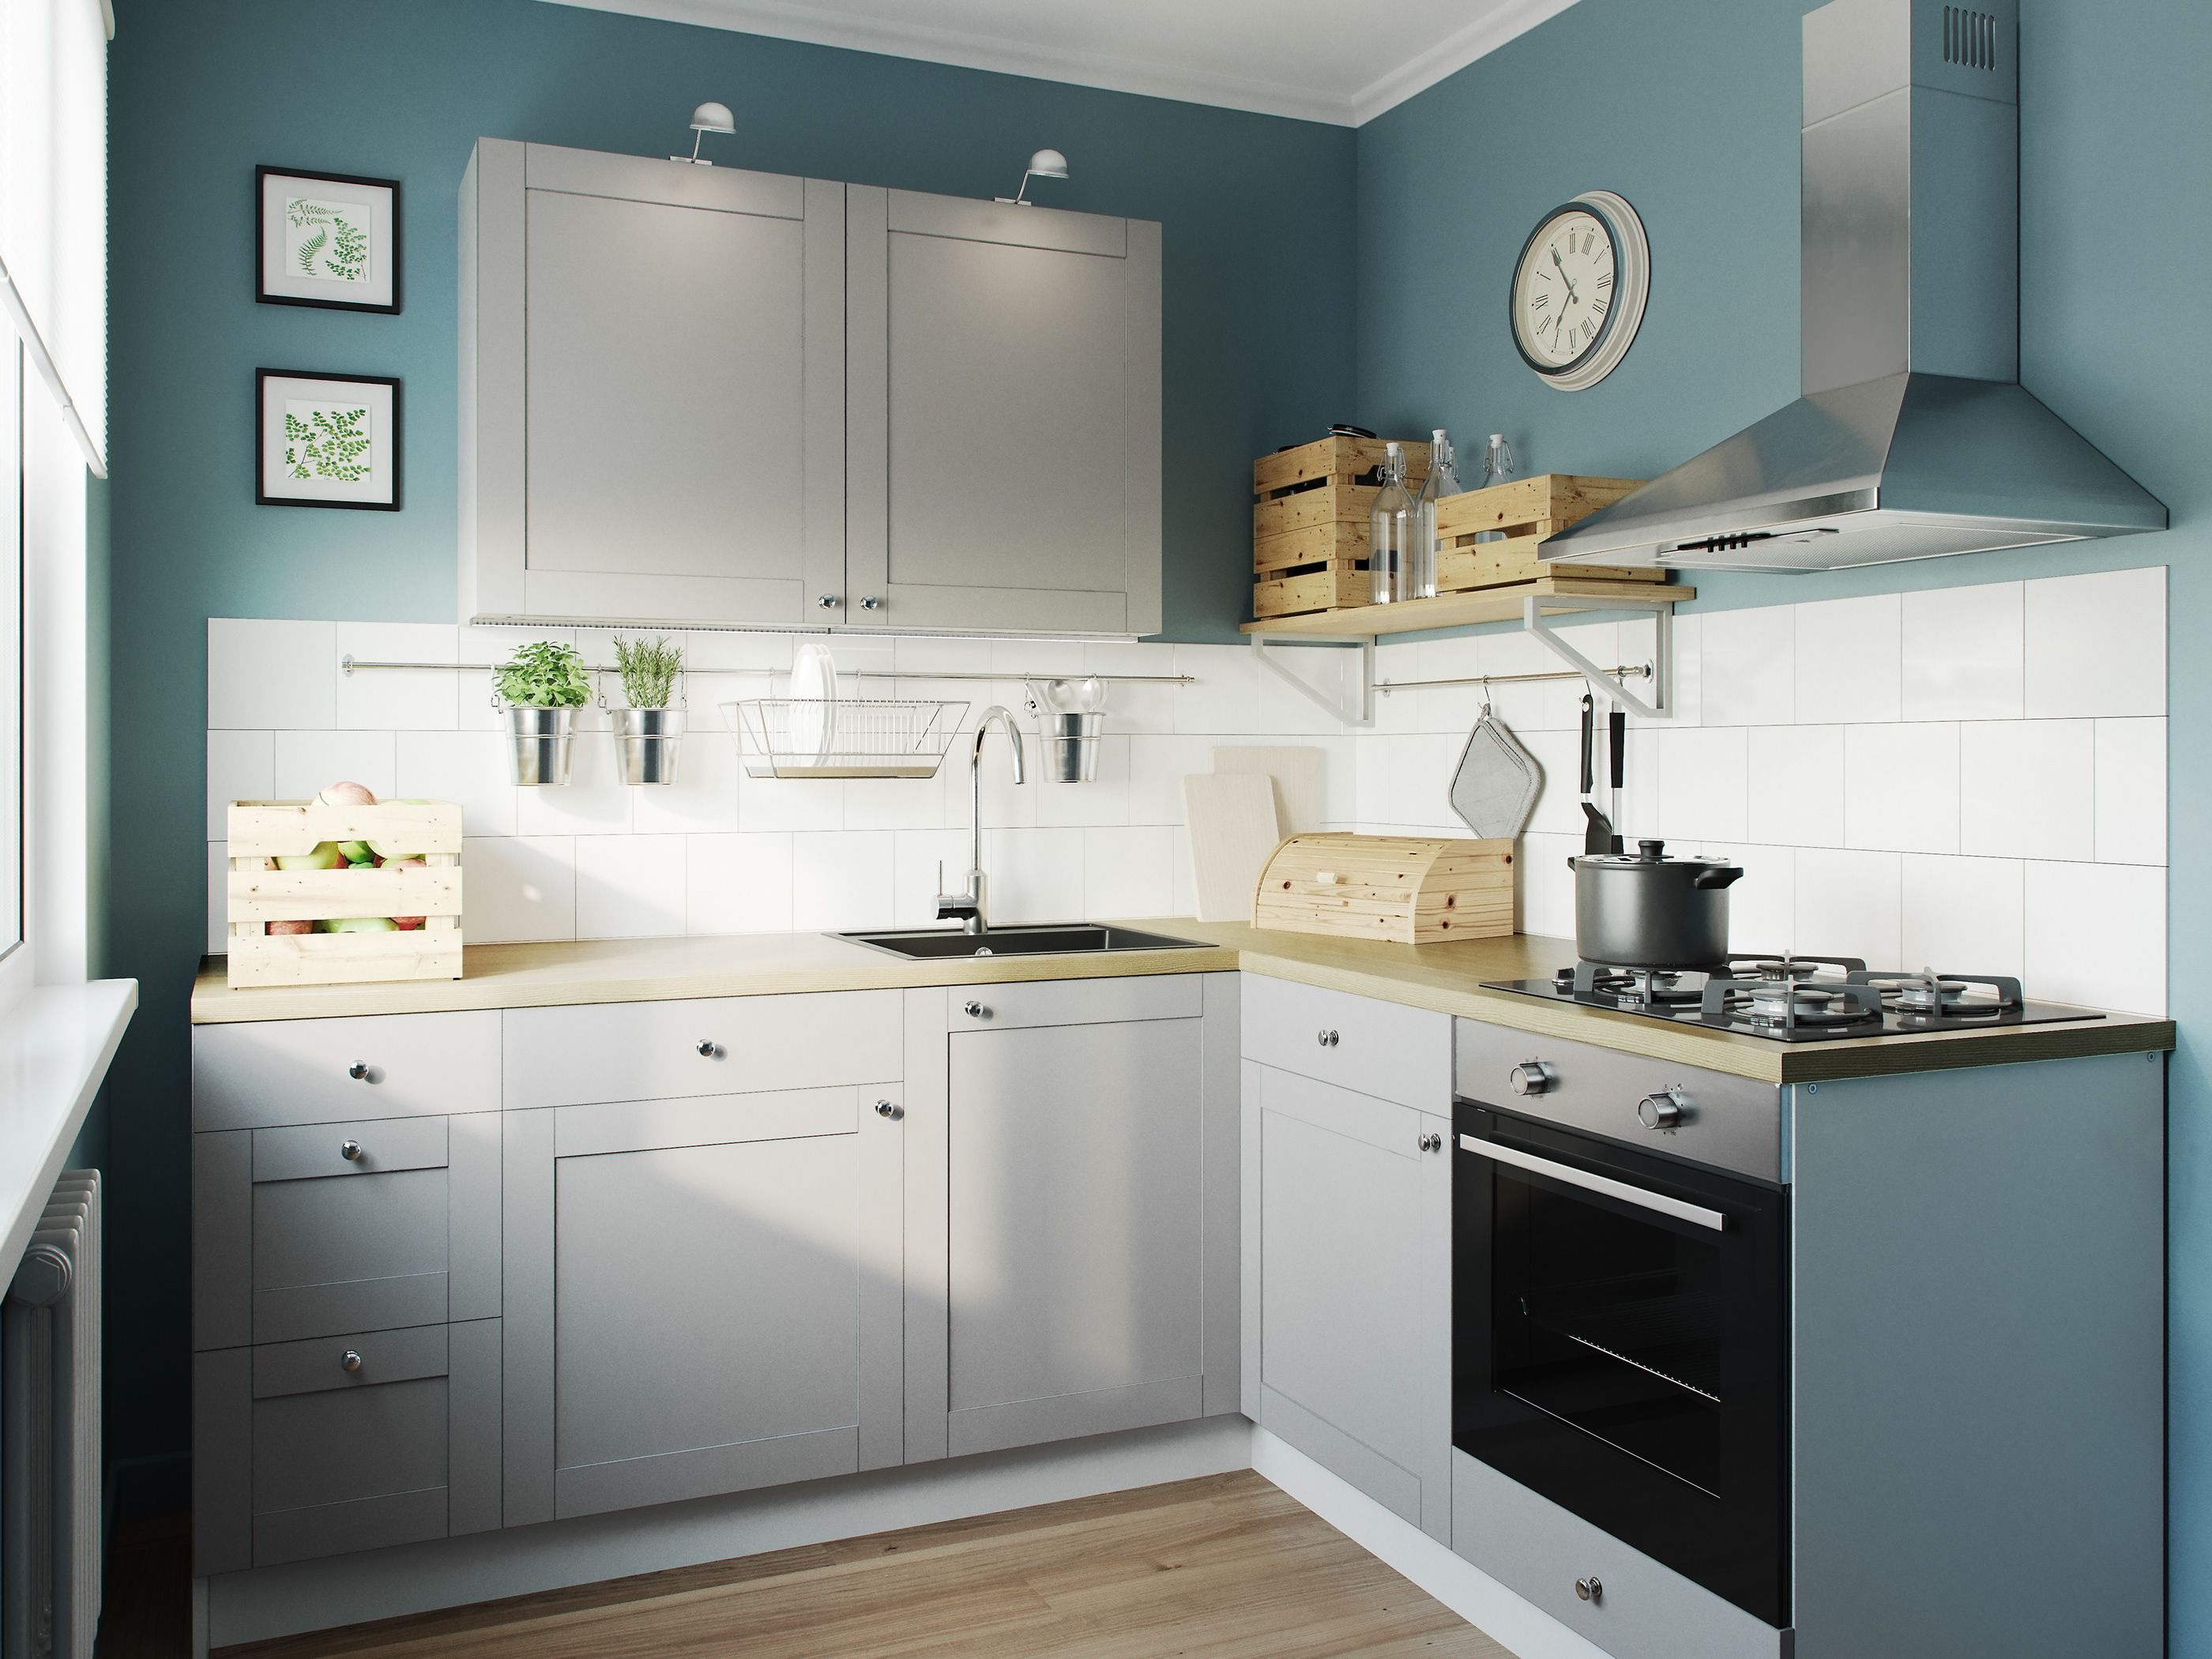 Visualization Of Kitchens For Ikea Catalogs Catalogs Ikea Kitchens Visualization Kitchen Design Small Ikea Kitchen Design Living Room And Kitchen Design